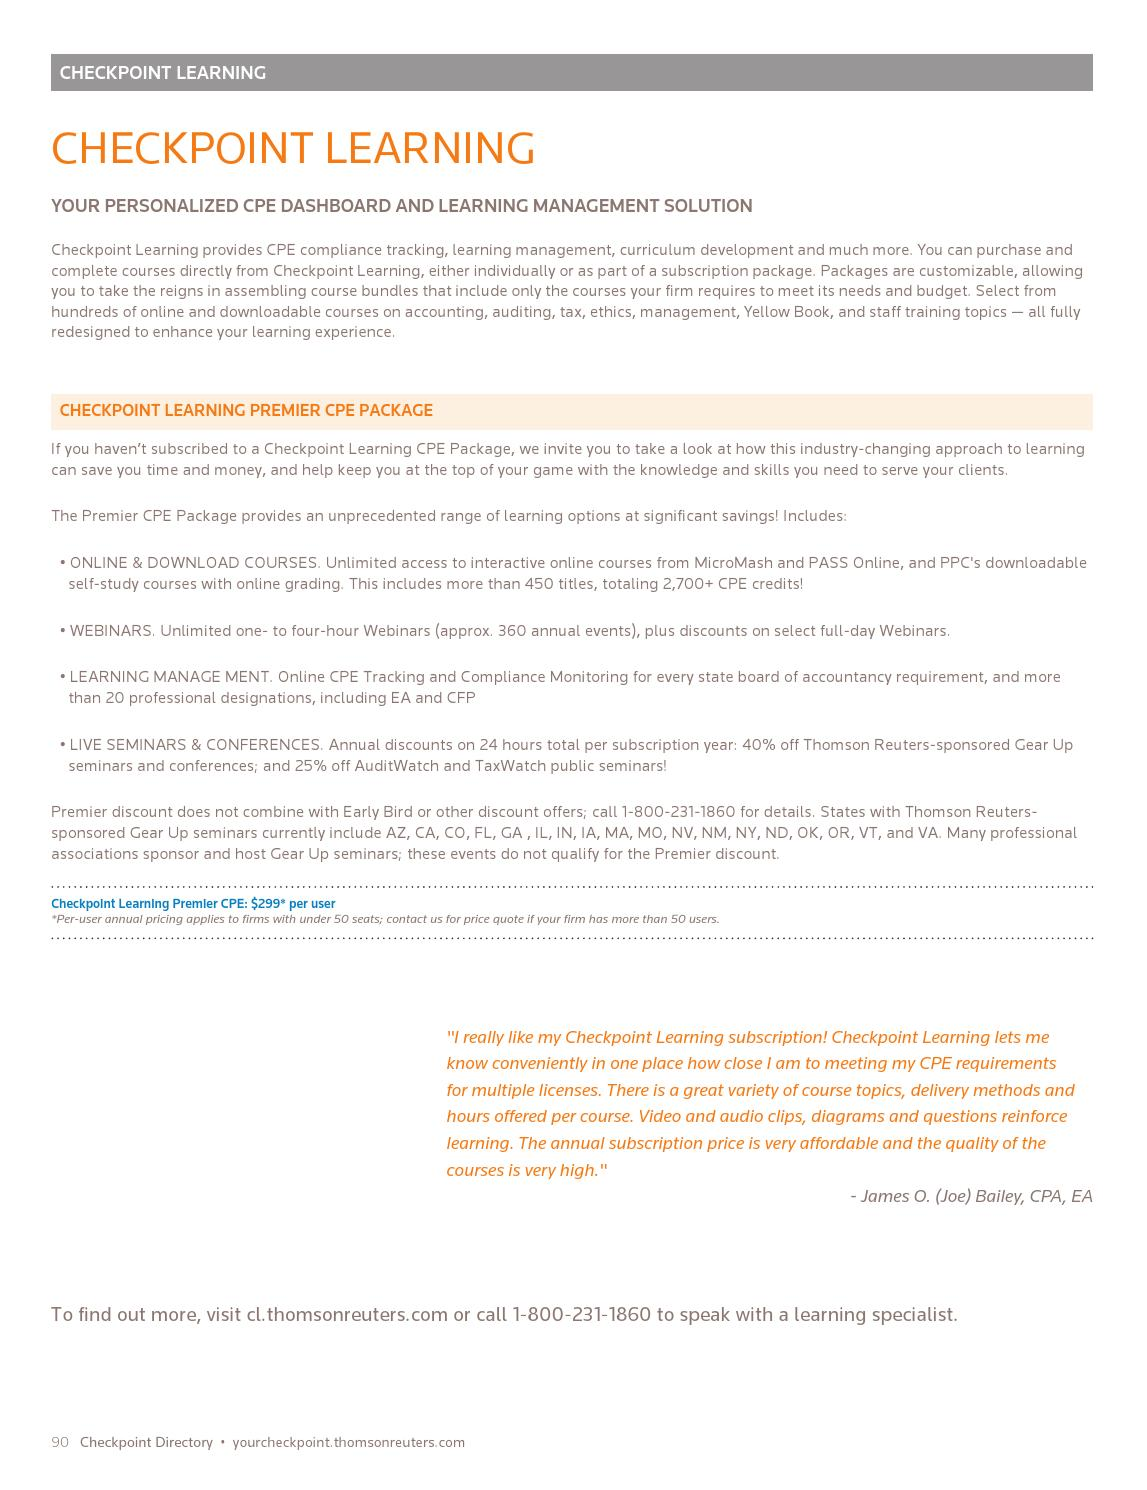 Thomson Reuters Checkpoint Catalog by khosley - issuu